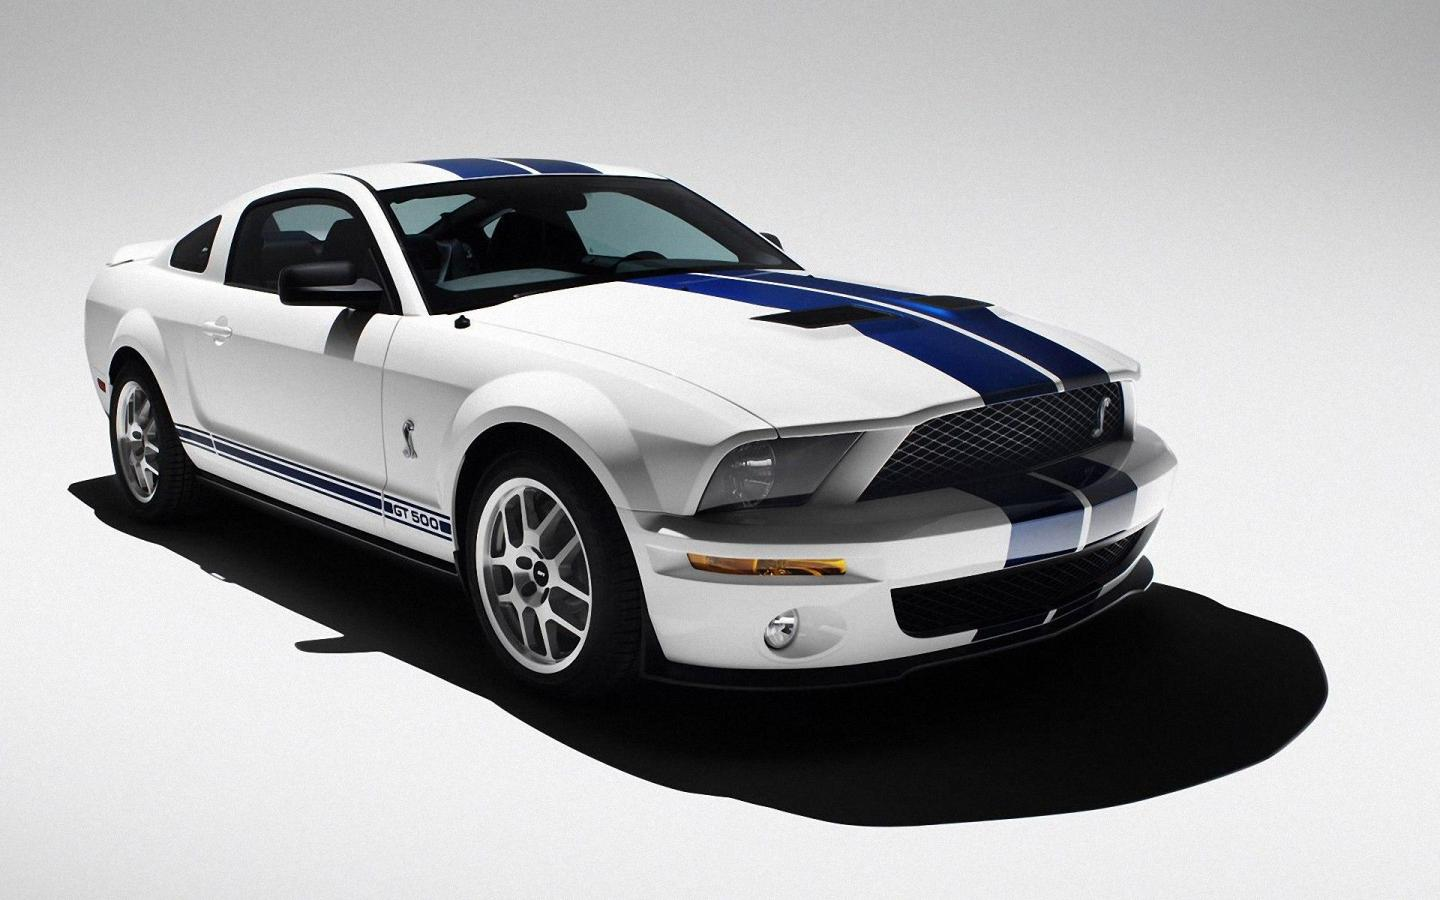 Ford Mustang Shelby GT500 1440x900 WallpapersFord Mustang 1440x900 1440x900